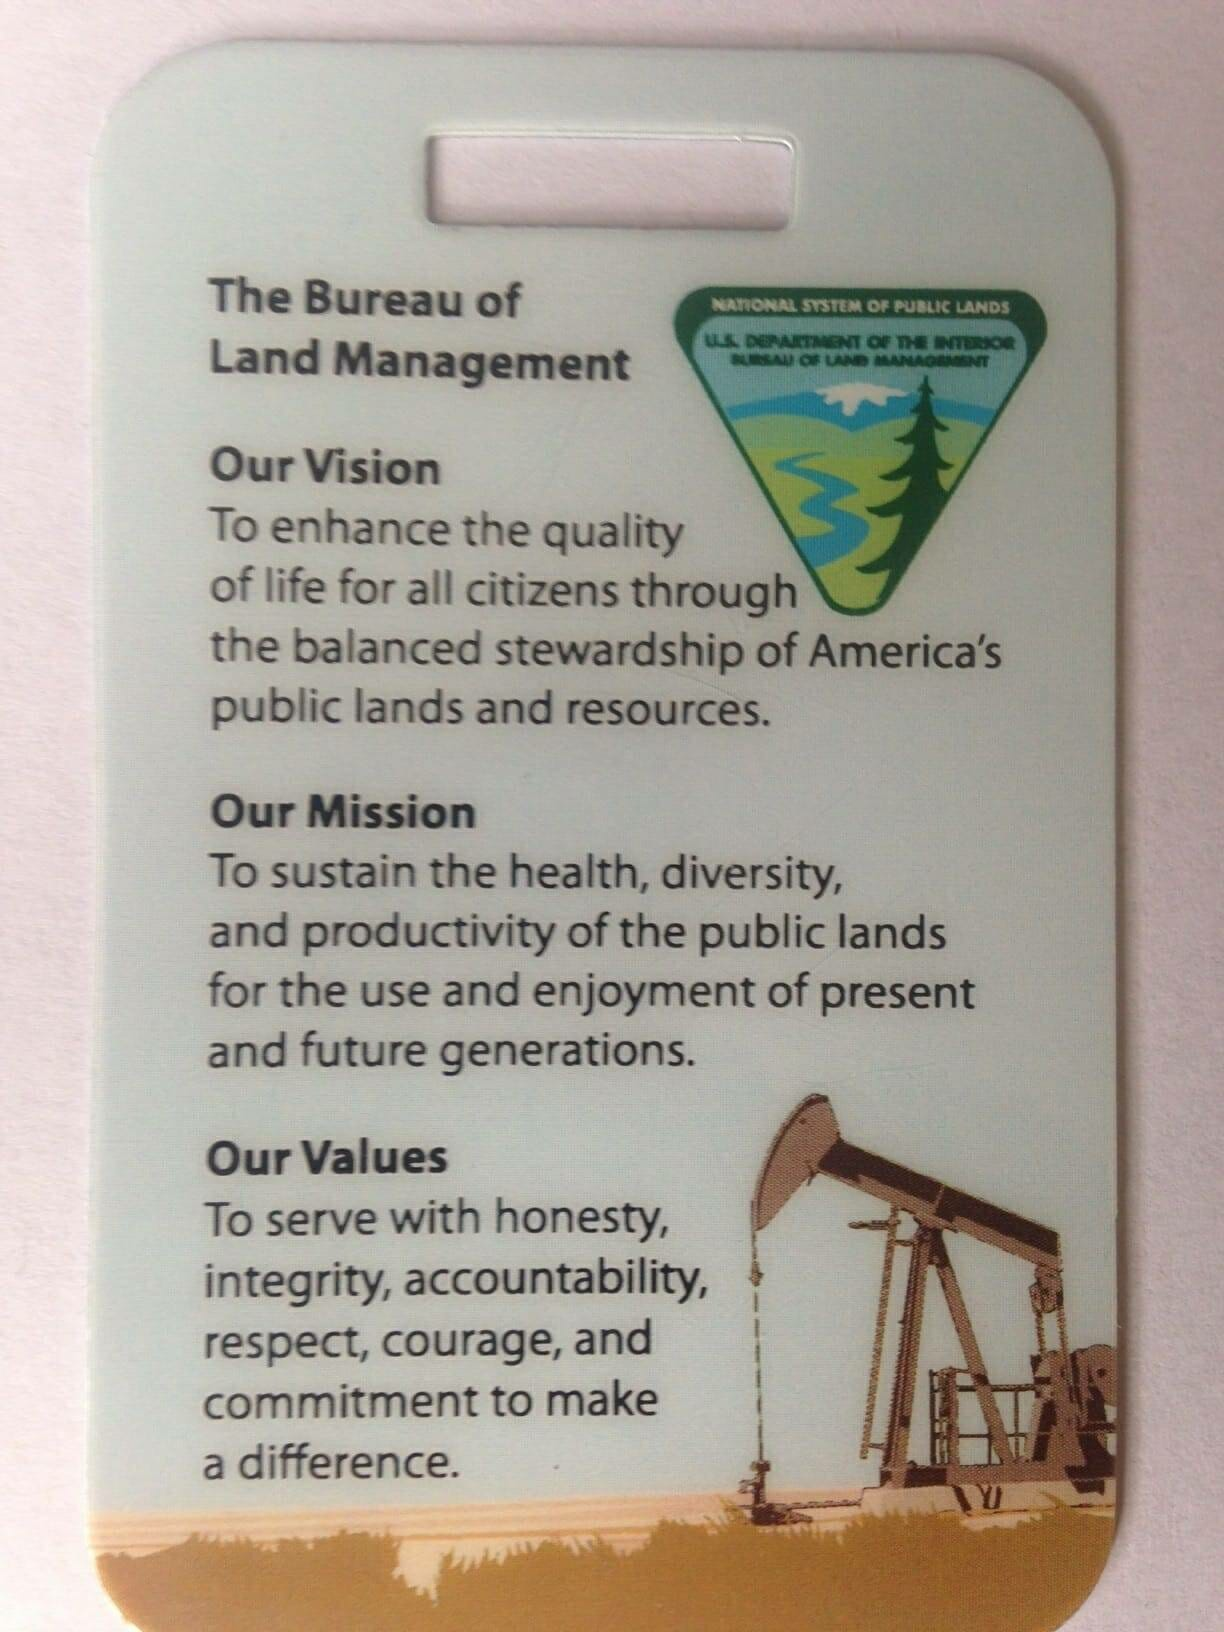 Blm Employees Ordered To Wear Propaganda Badges With Images Of Oil Rigs Livestock Grazing Yubanet